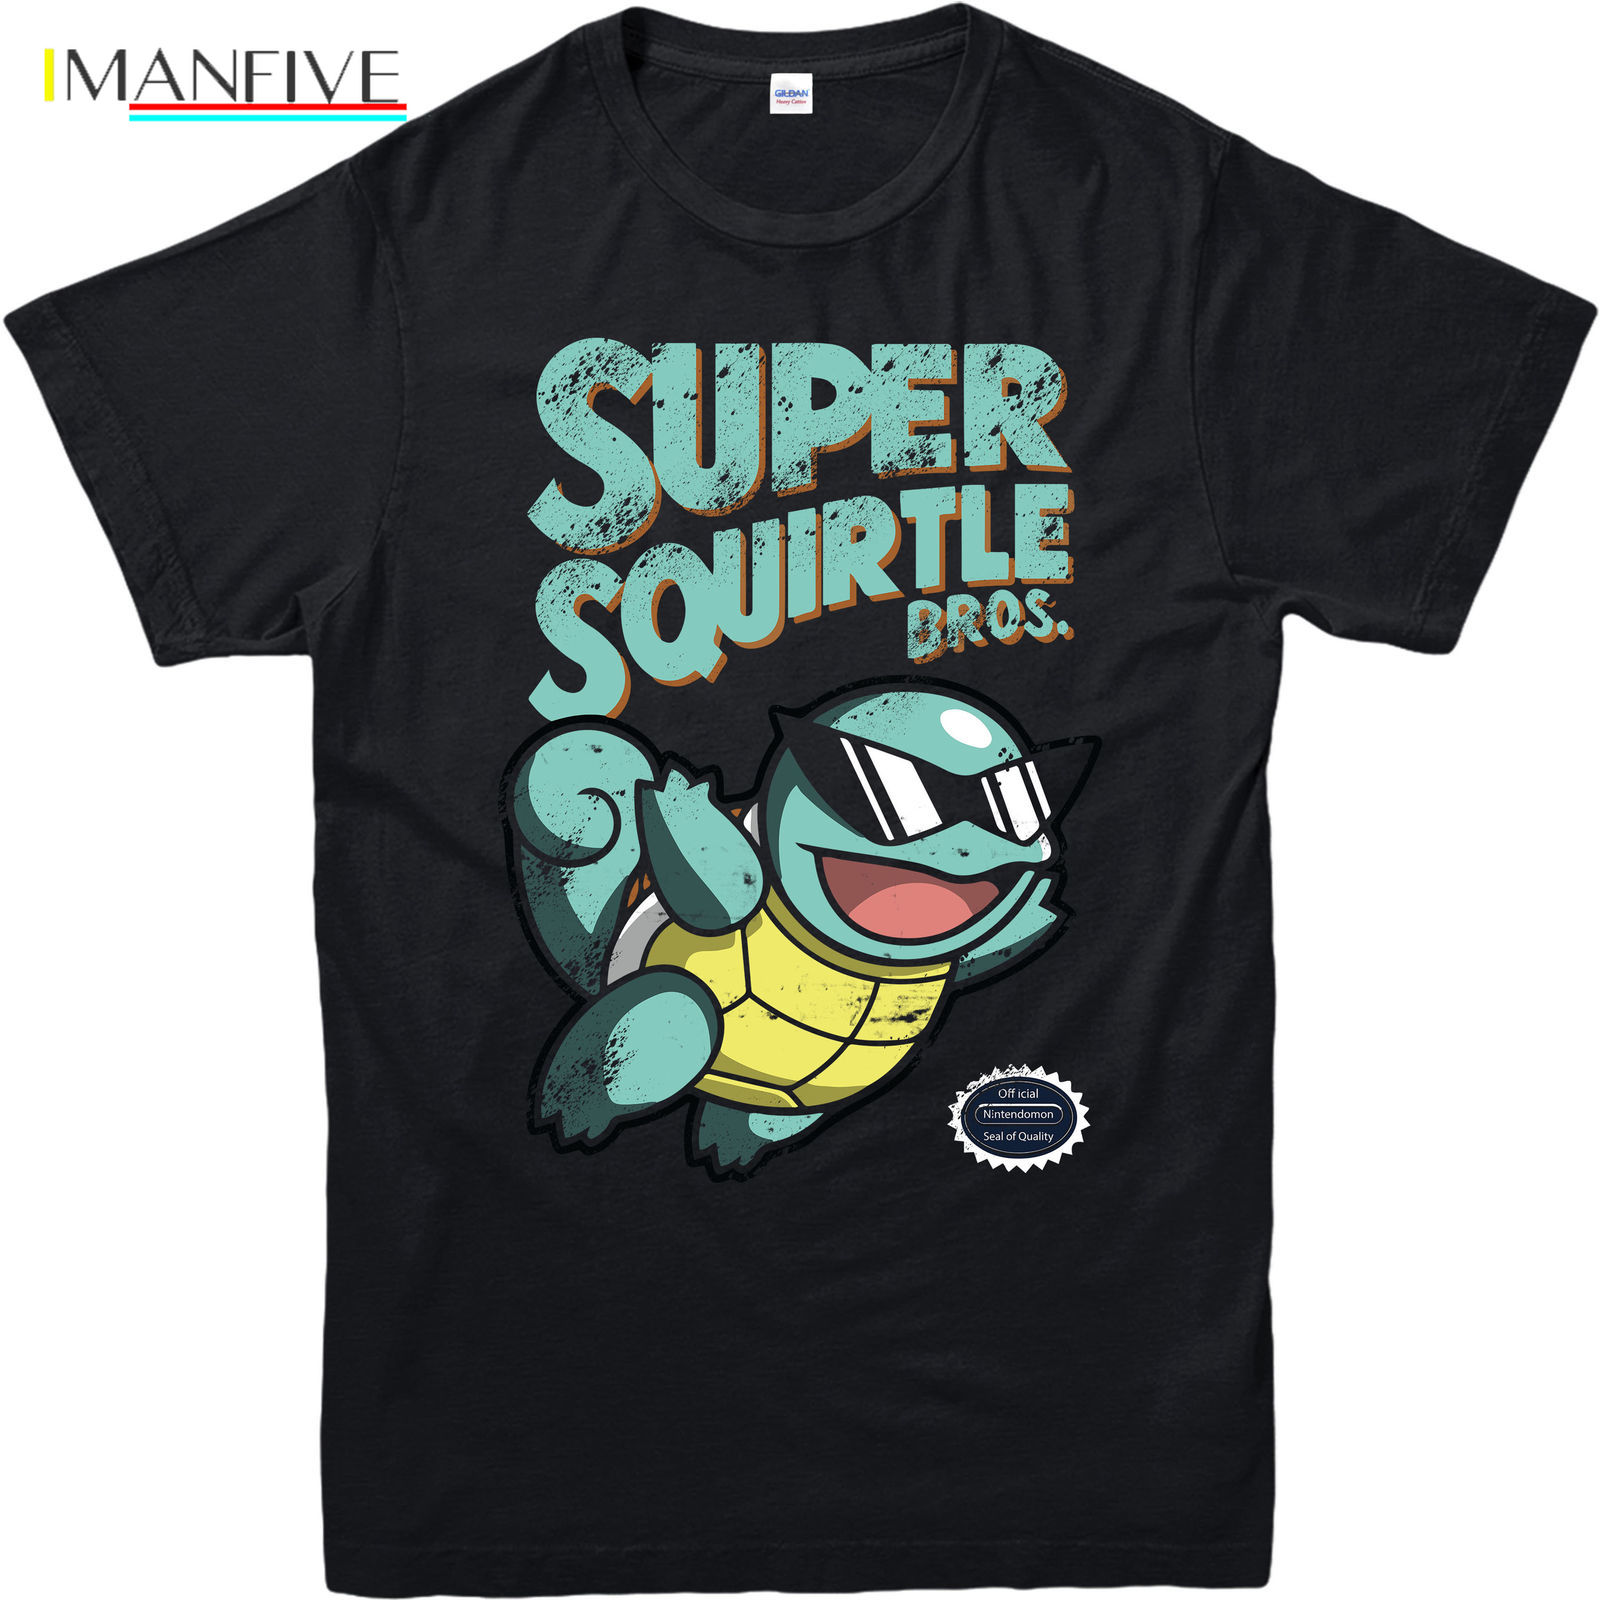 Pokemon T Shirt Super Squirtle Mario Bros Spoof Adult and kids Sizes 100 Cotton Straight O Neck Short Sleeve Chinese Style in T Shirts from Men 39 s Clothing